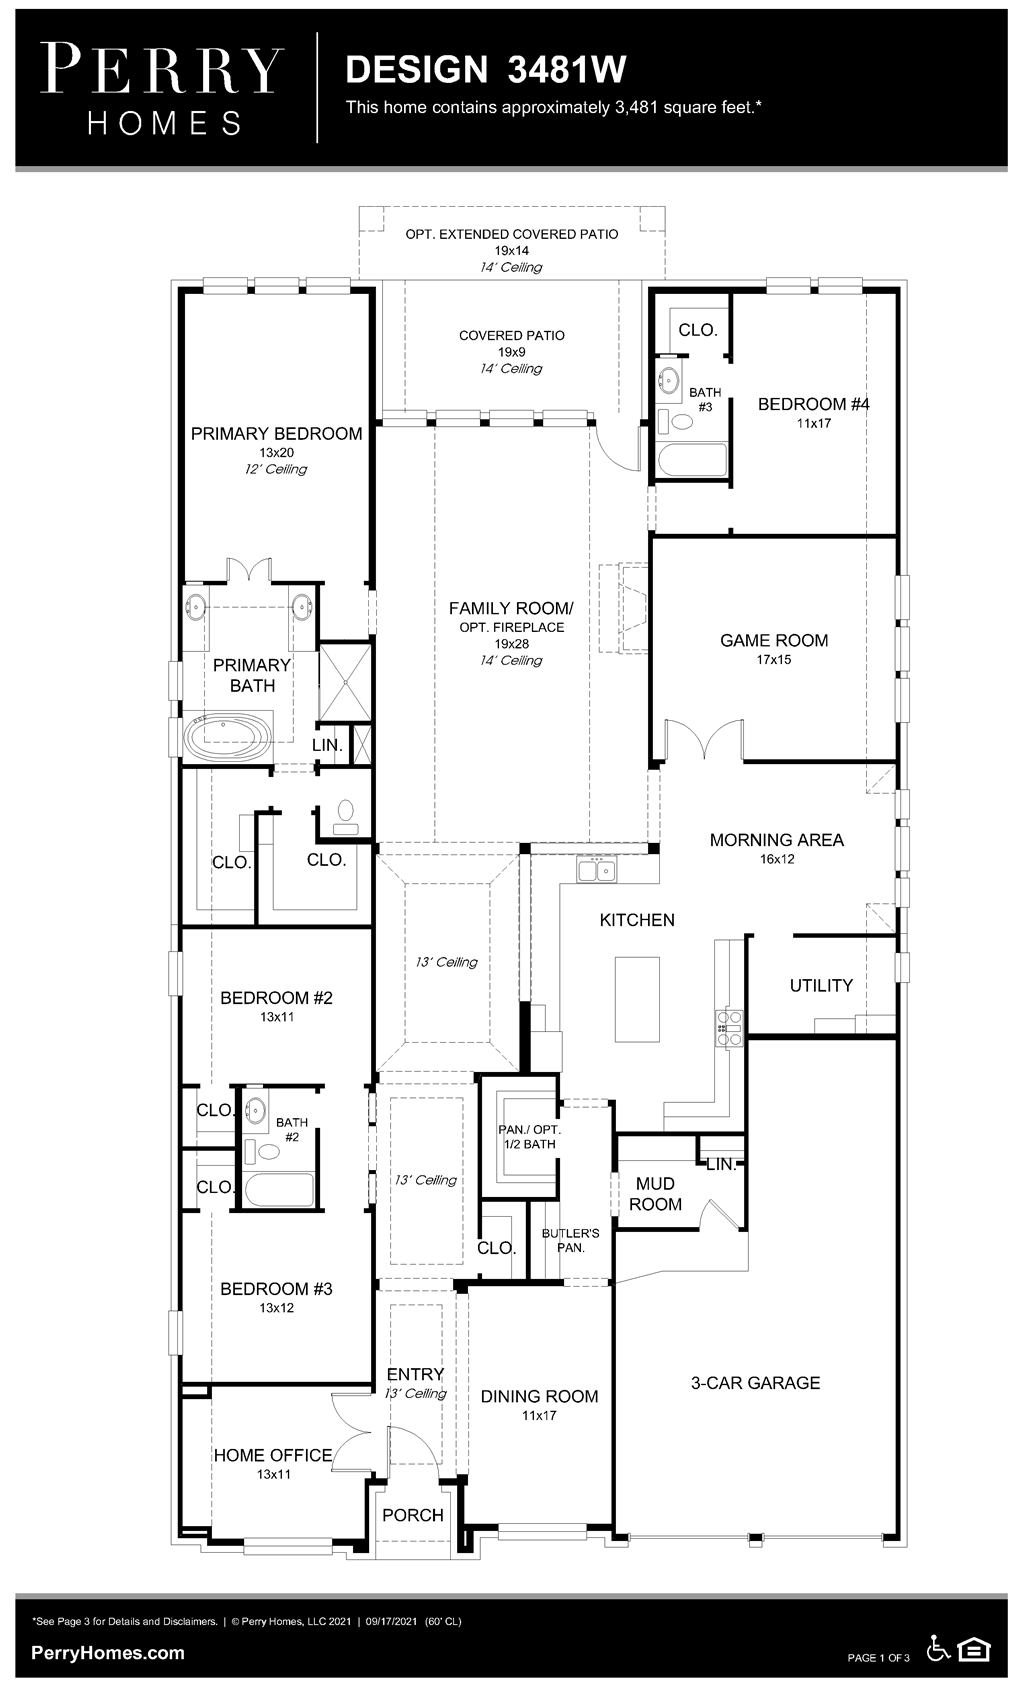 Floor Plan for 3481W